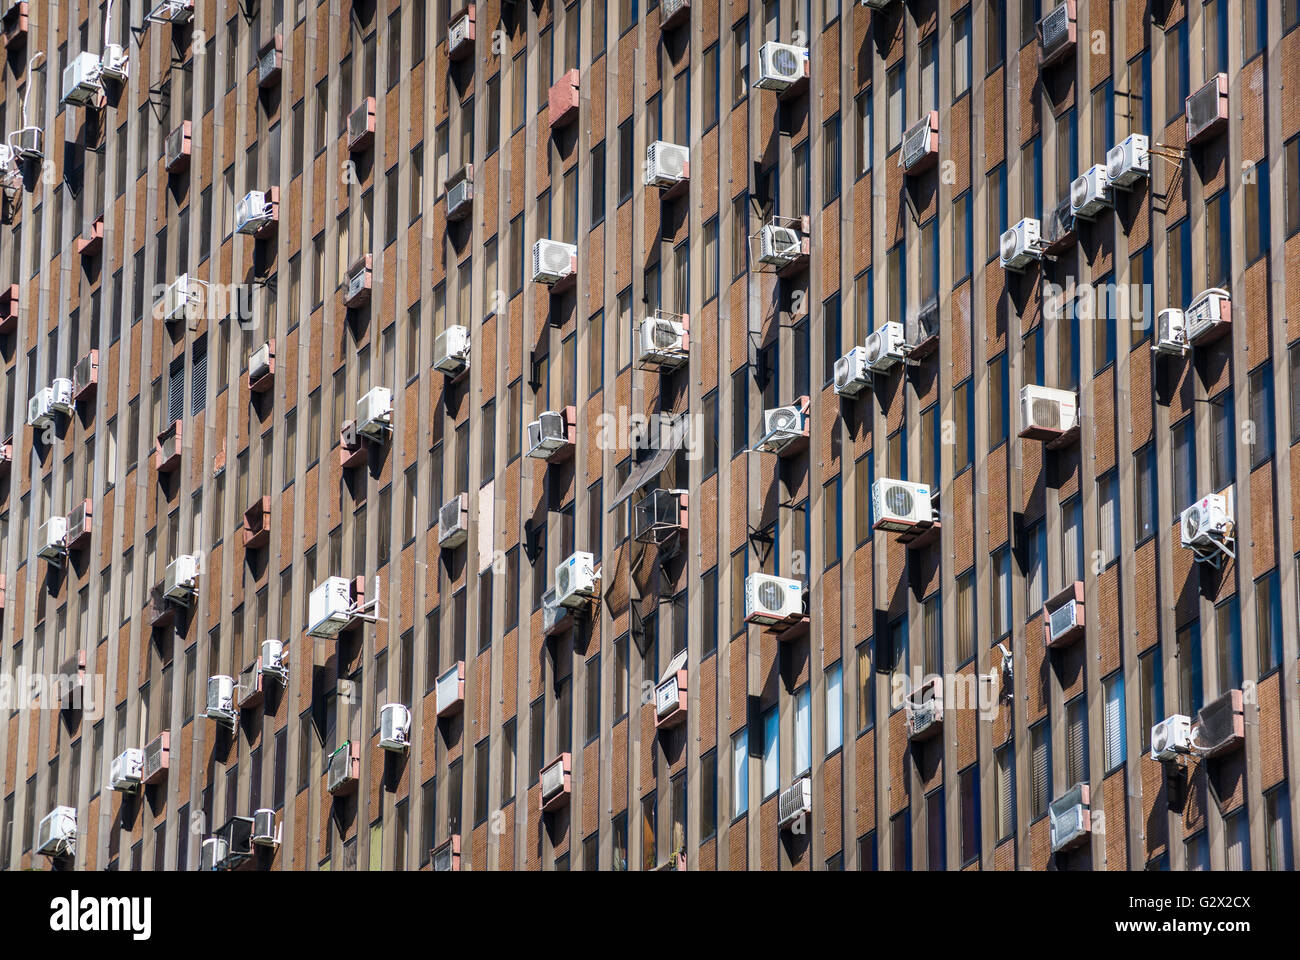 High rise building with air-conditioning units, Rio de Janeiro, Brazil - Stock Image